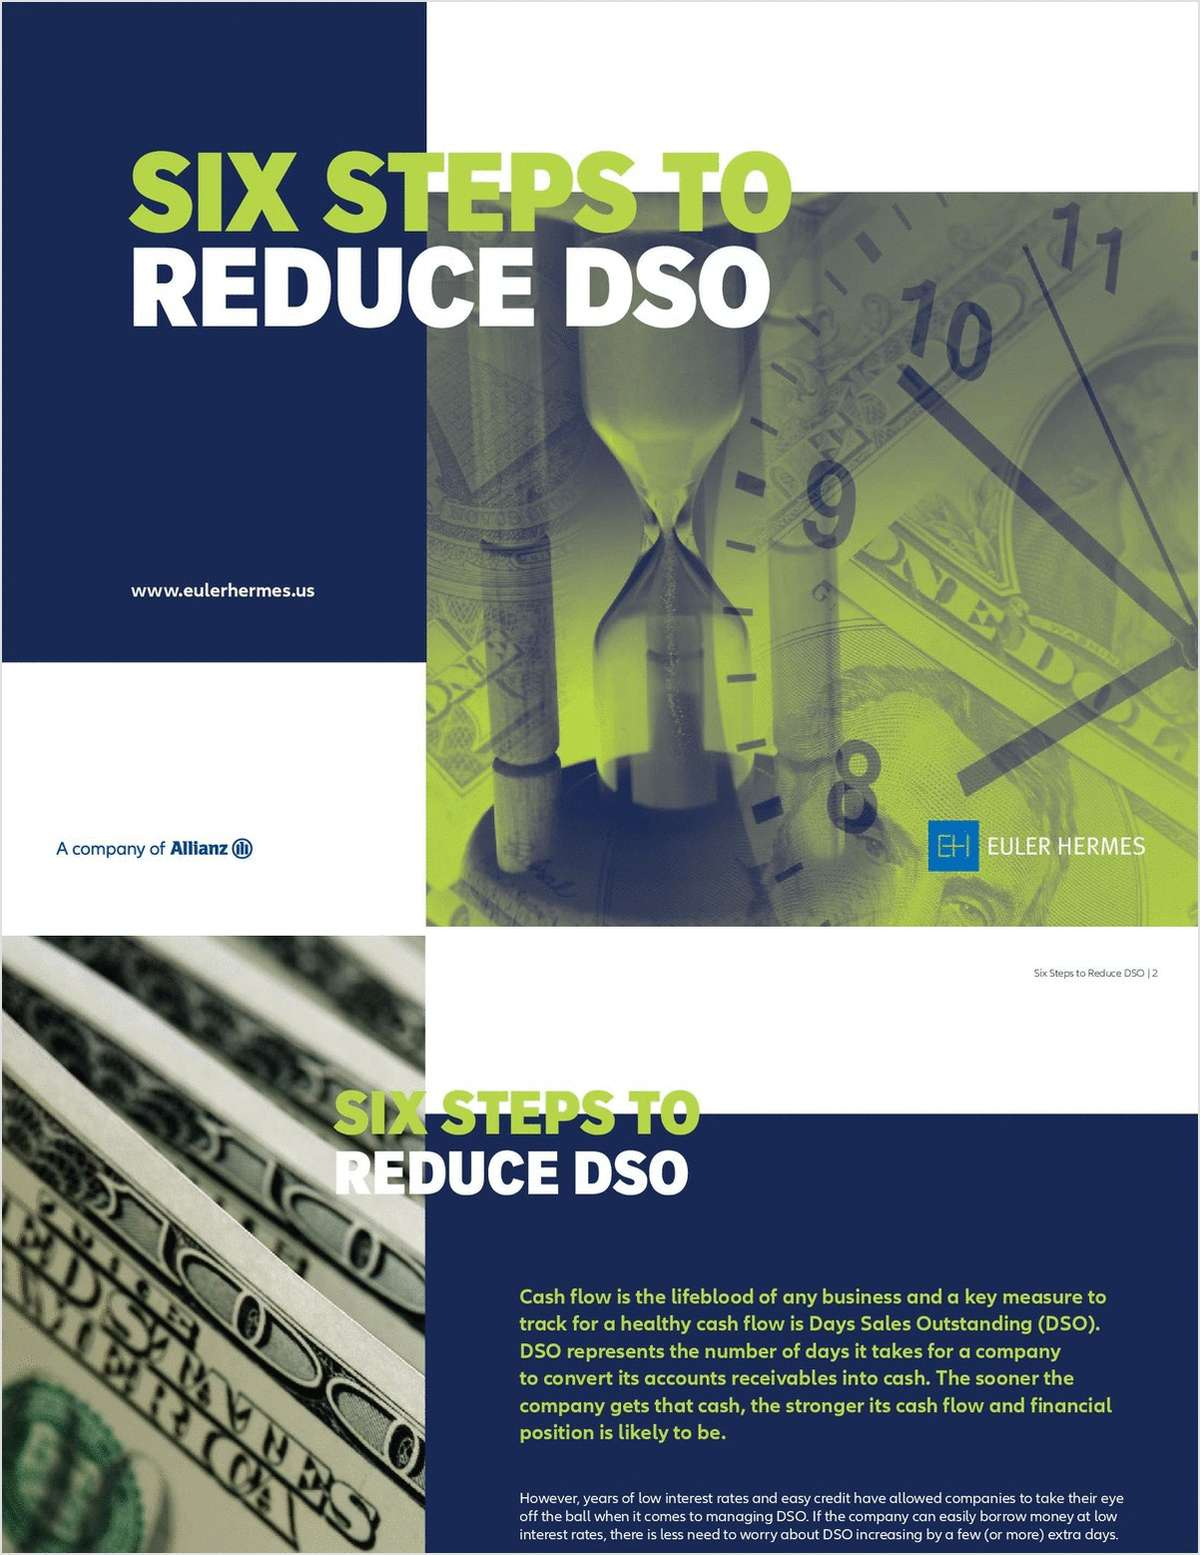 Six Steps to Reduce DSO